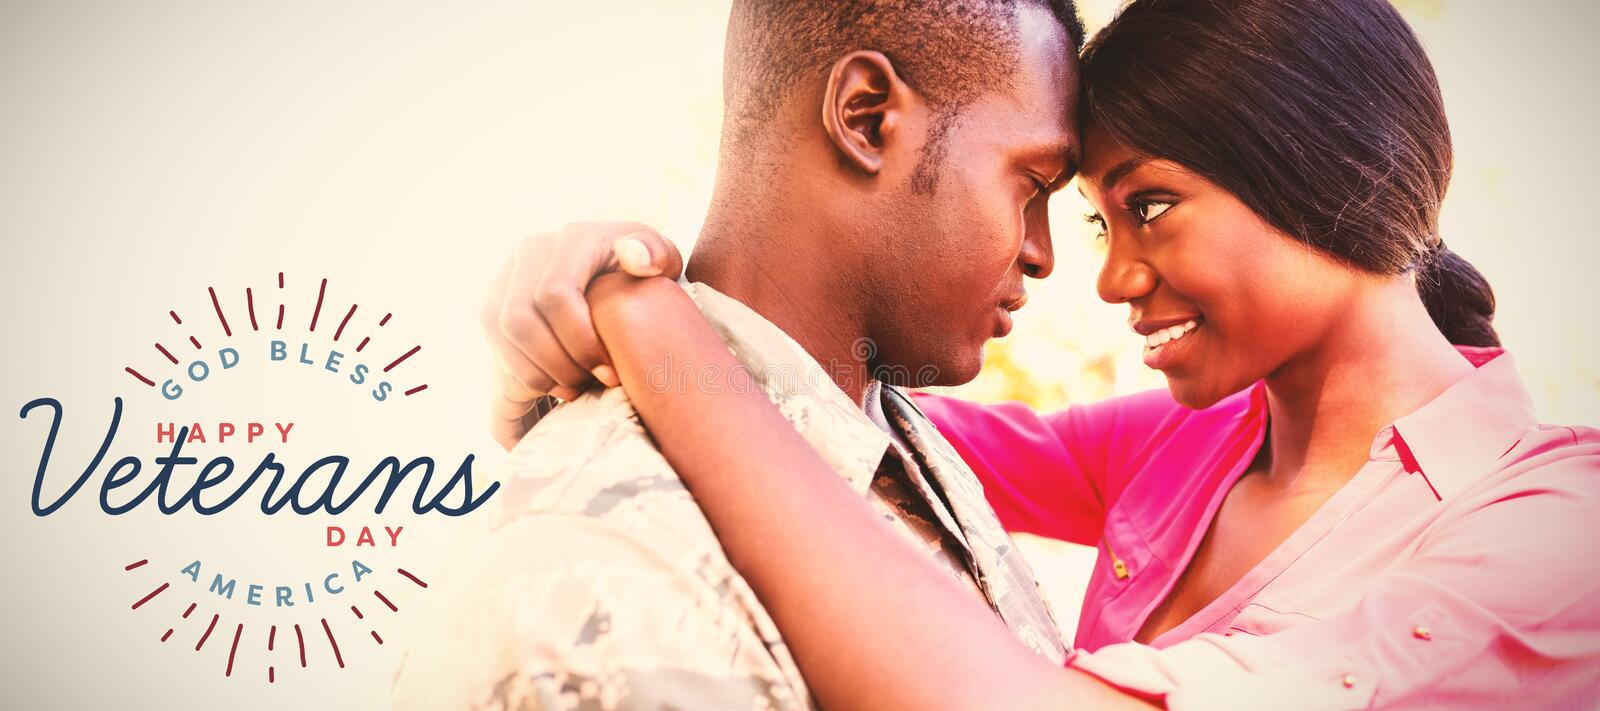 Composite image of logo for veterans day in america. Logo for veterans day in america against couple posing together royalty free stock image